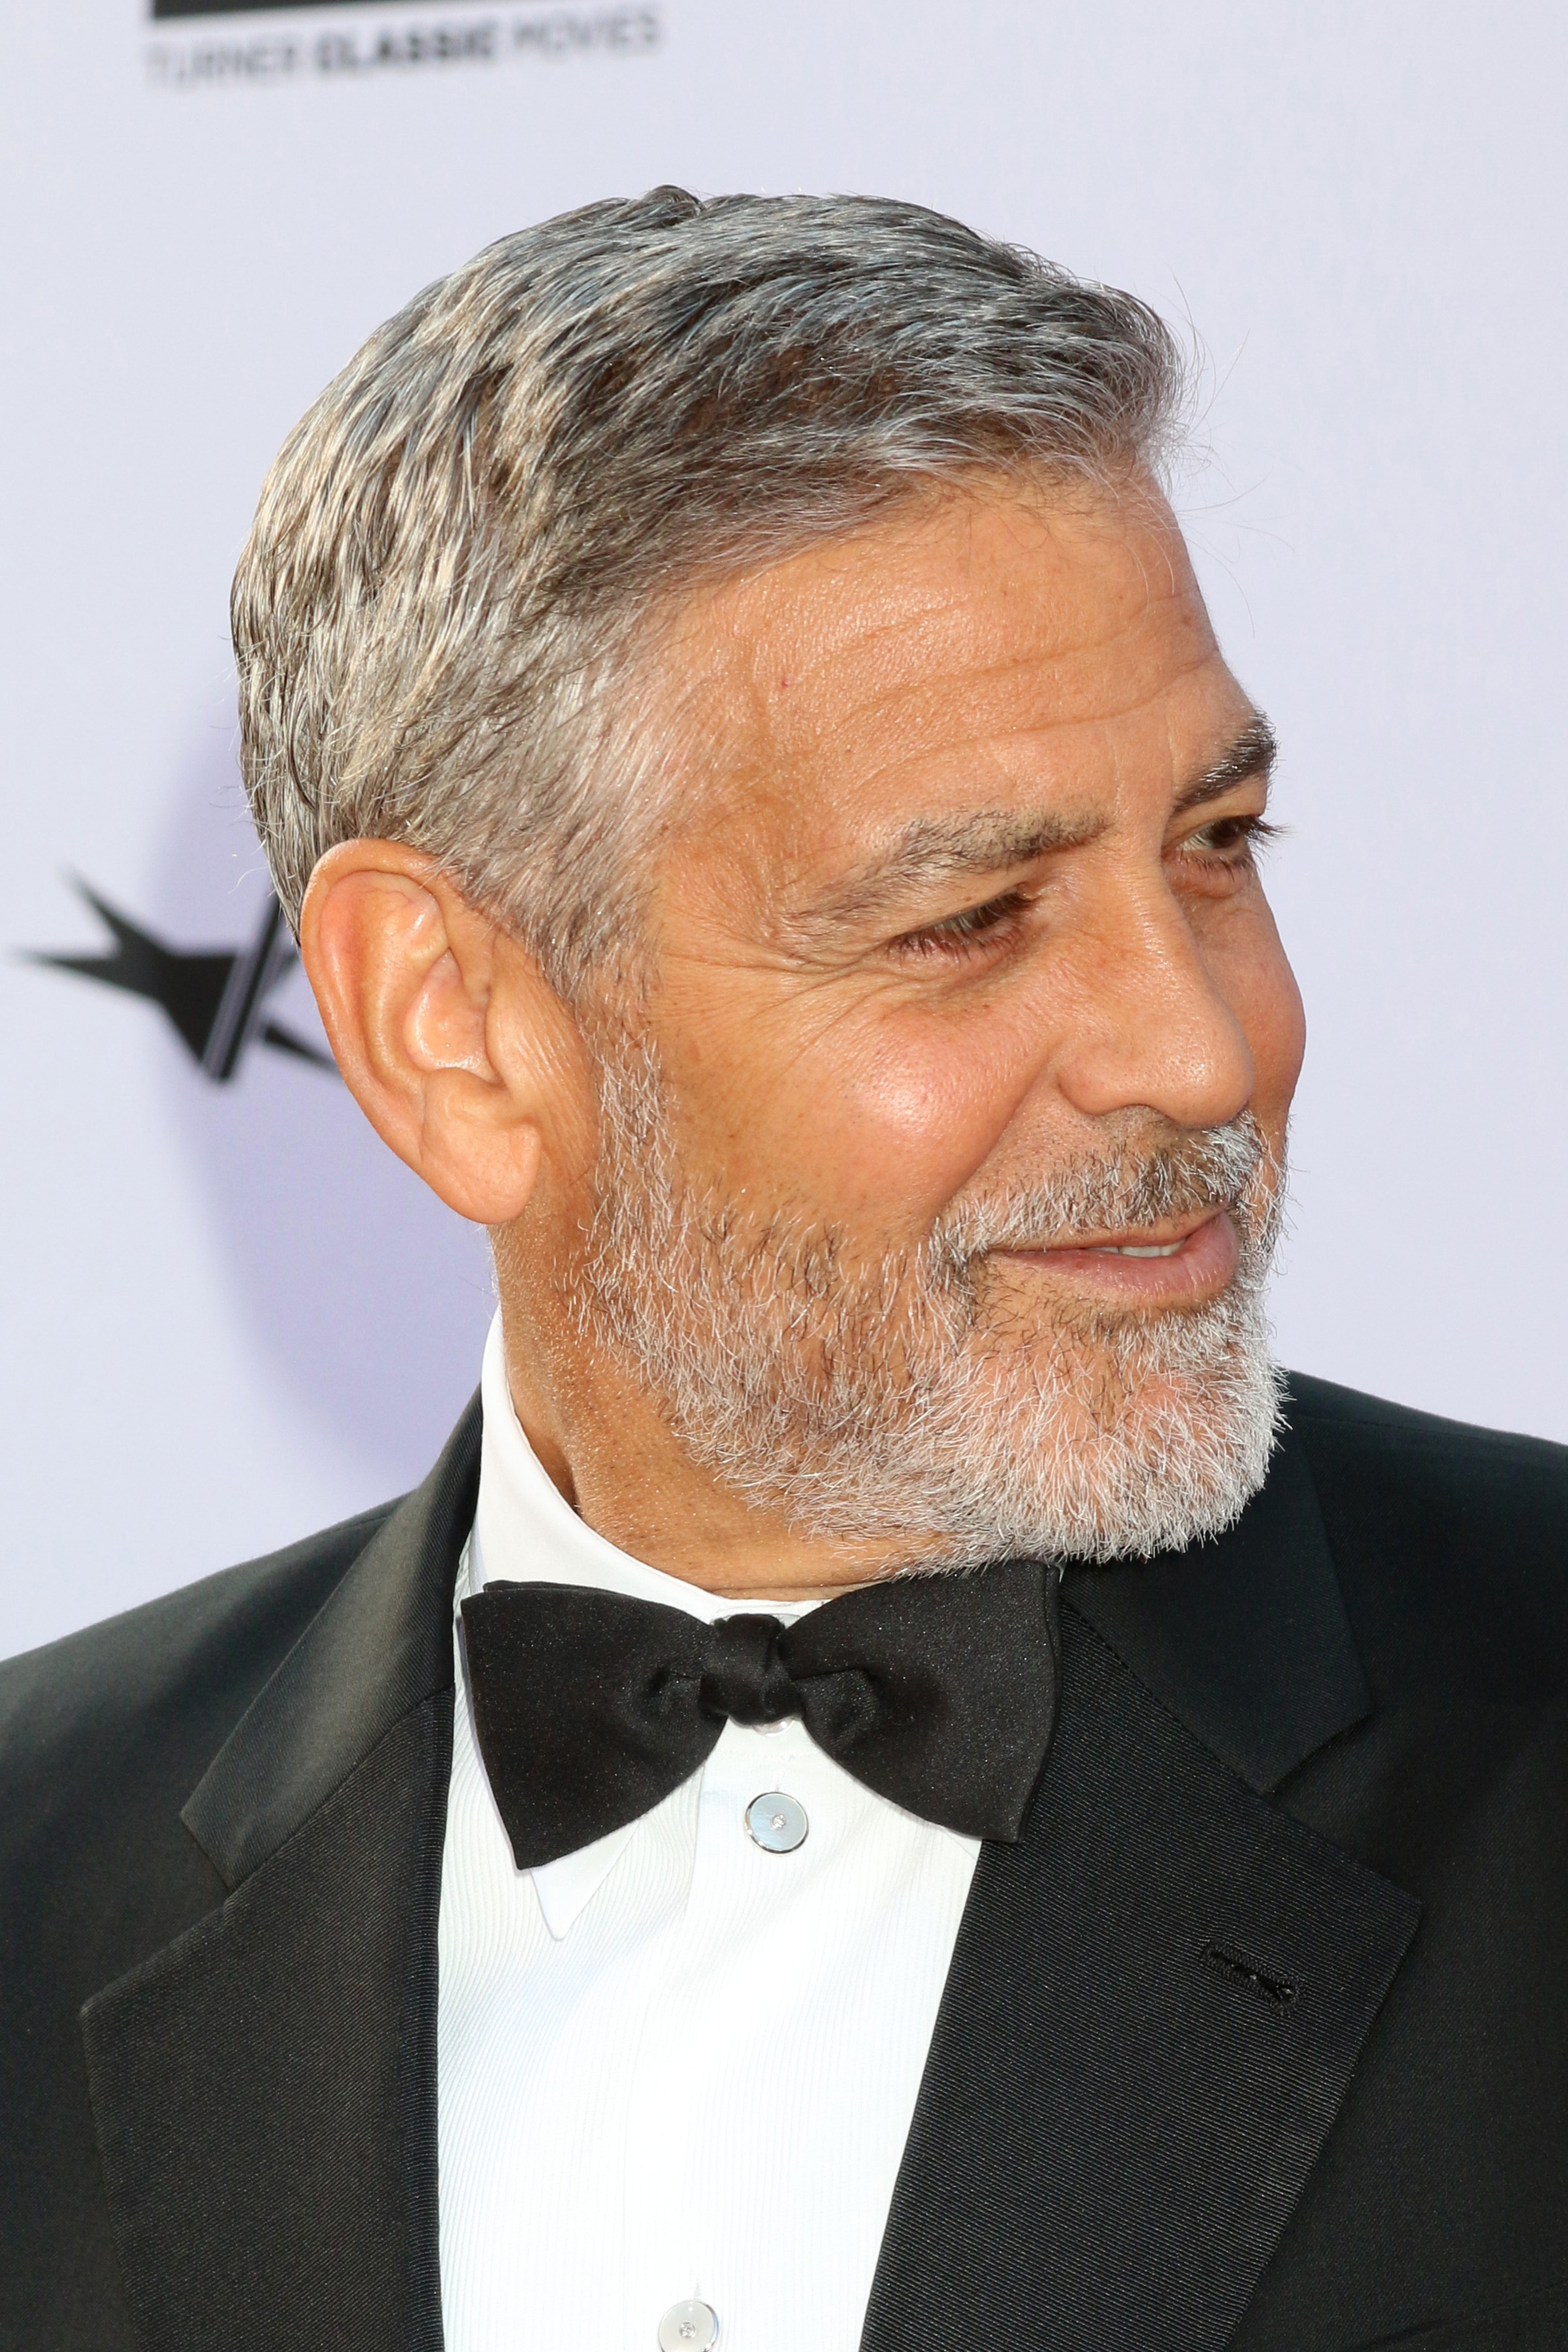 George Clooney at the 46th AFI Life Achievement Awards in Los Angeles, California on June 8, 2018. (Nicky Nelson/WENN.com)